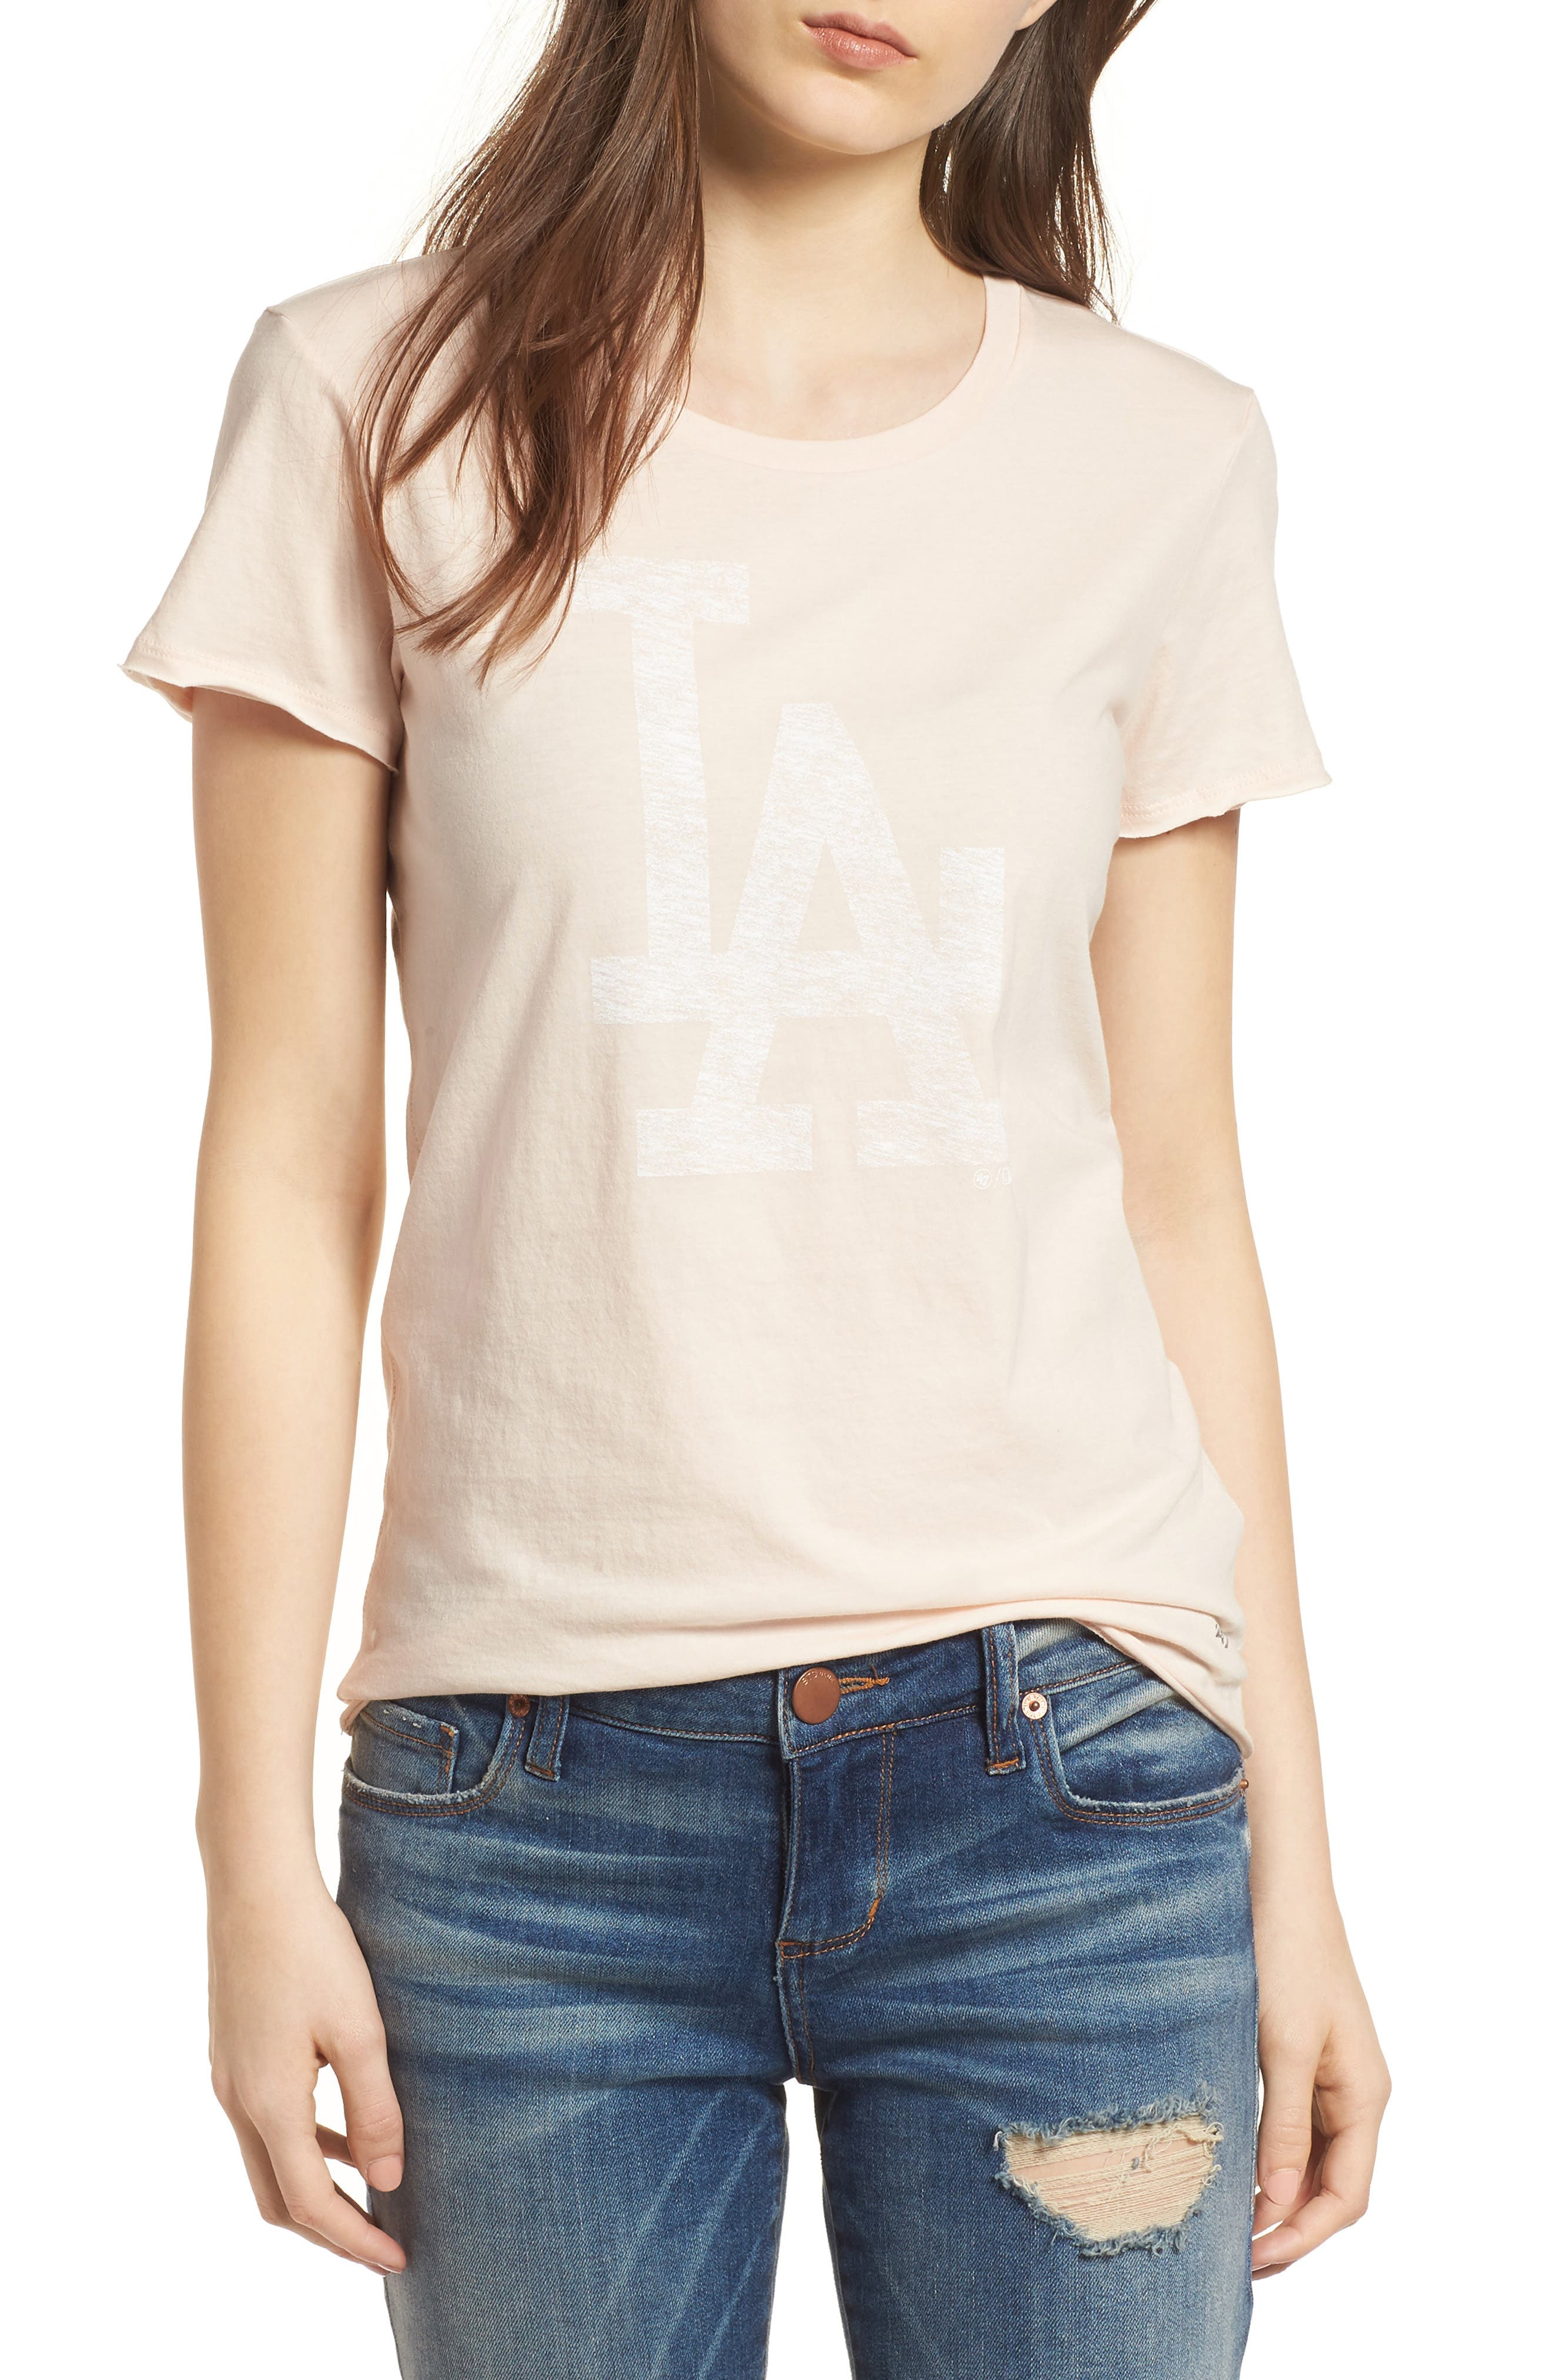 Los Angeles Dodgers Fader Letter Tee,                         Main,                         color, Blush